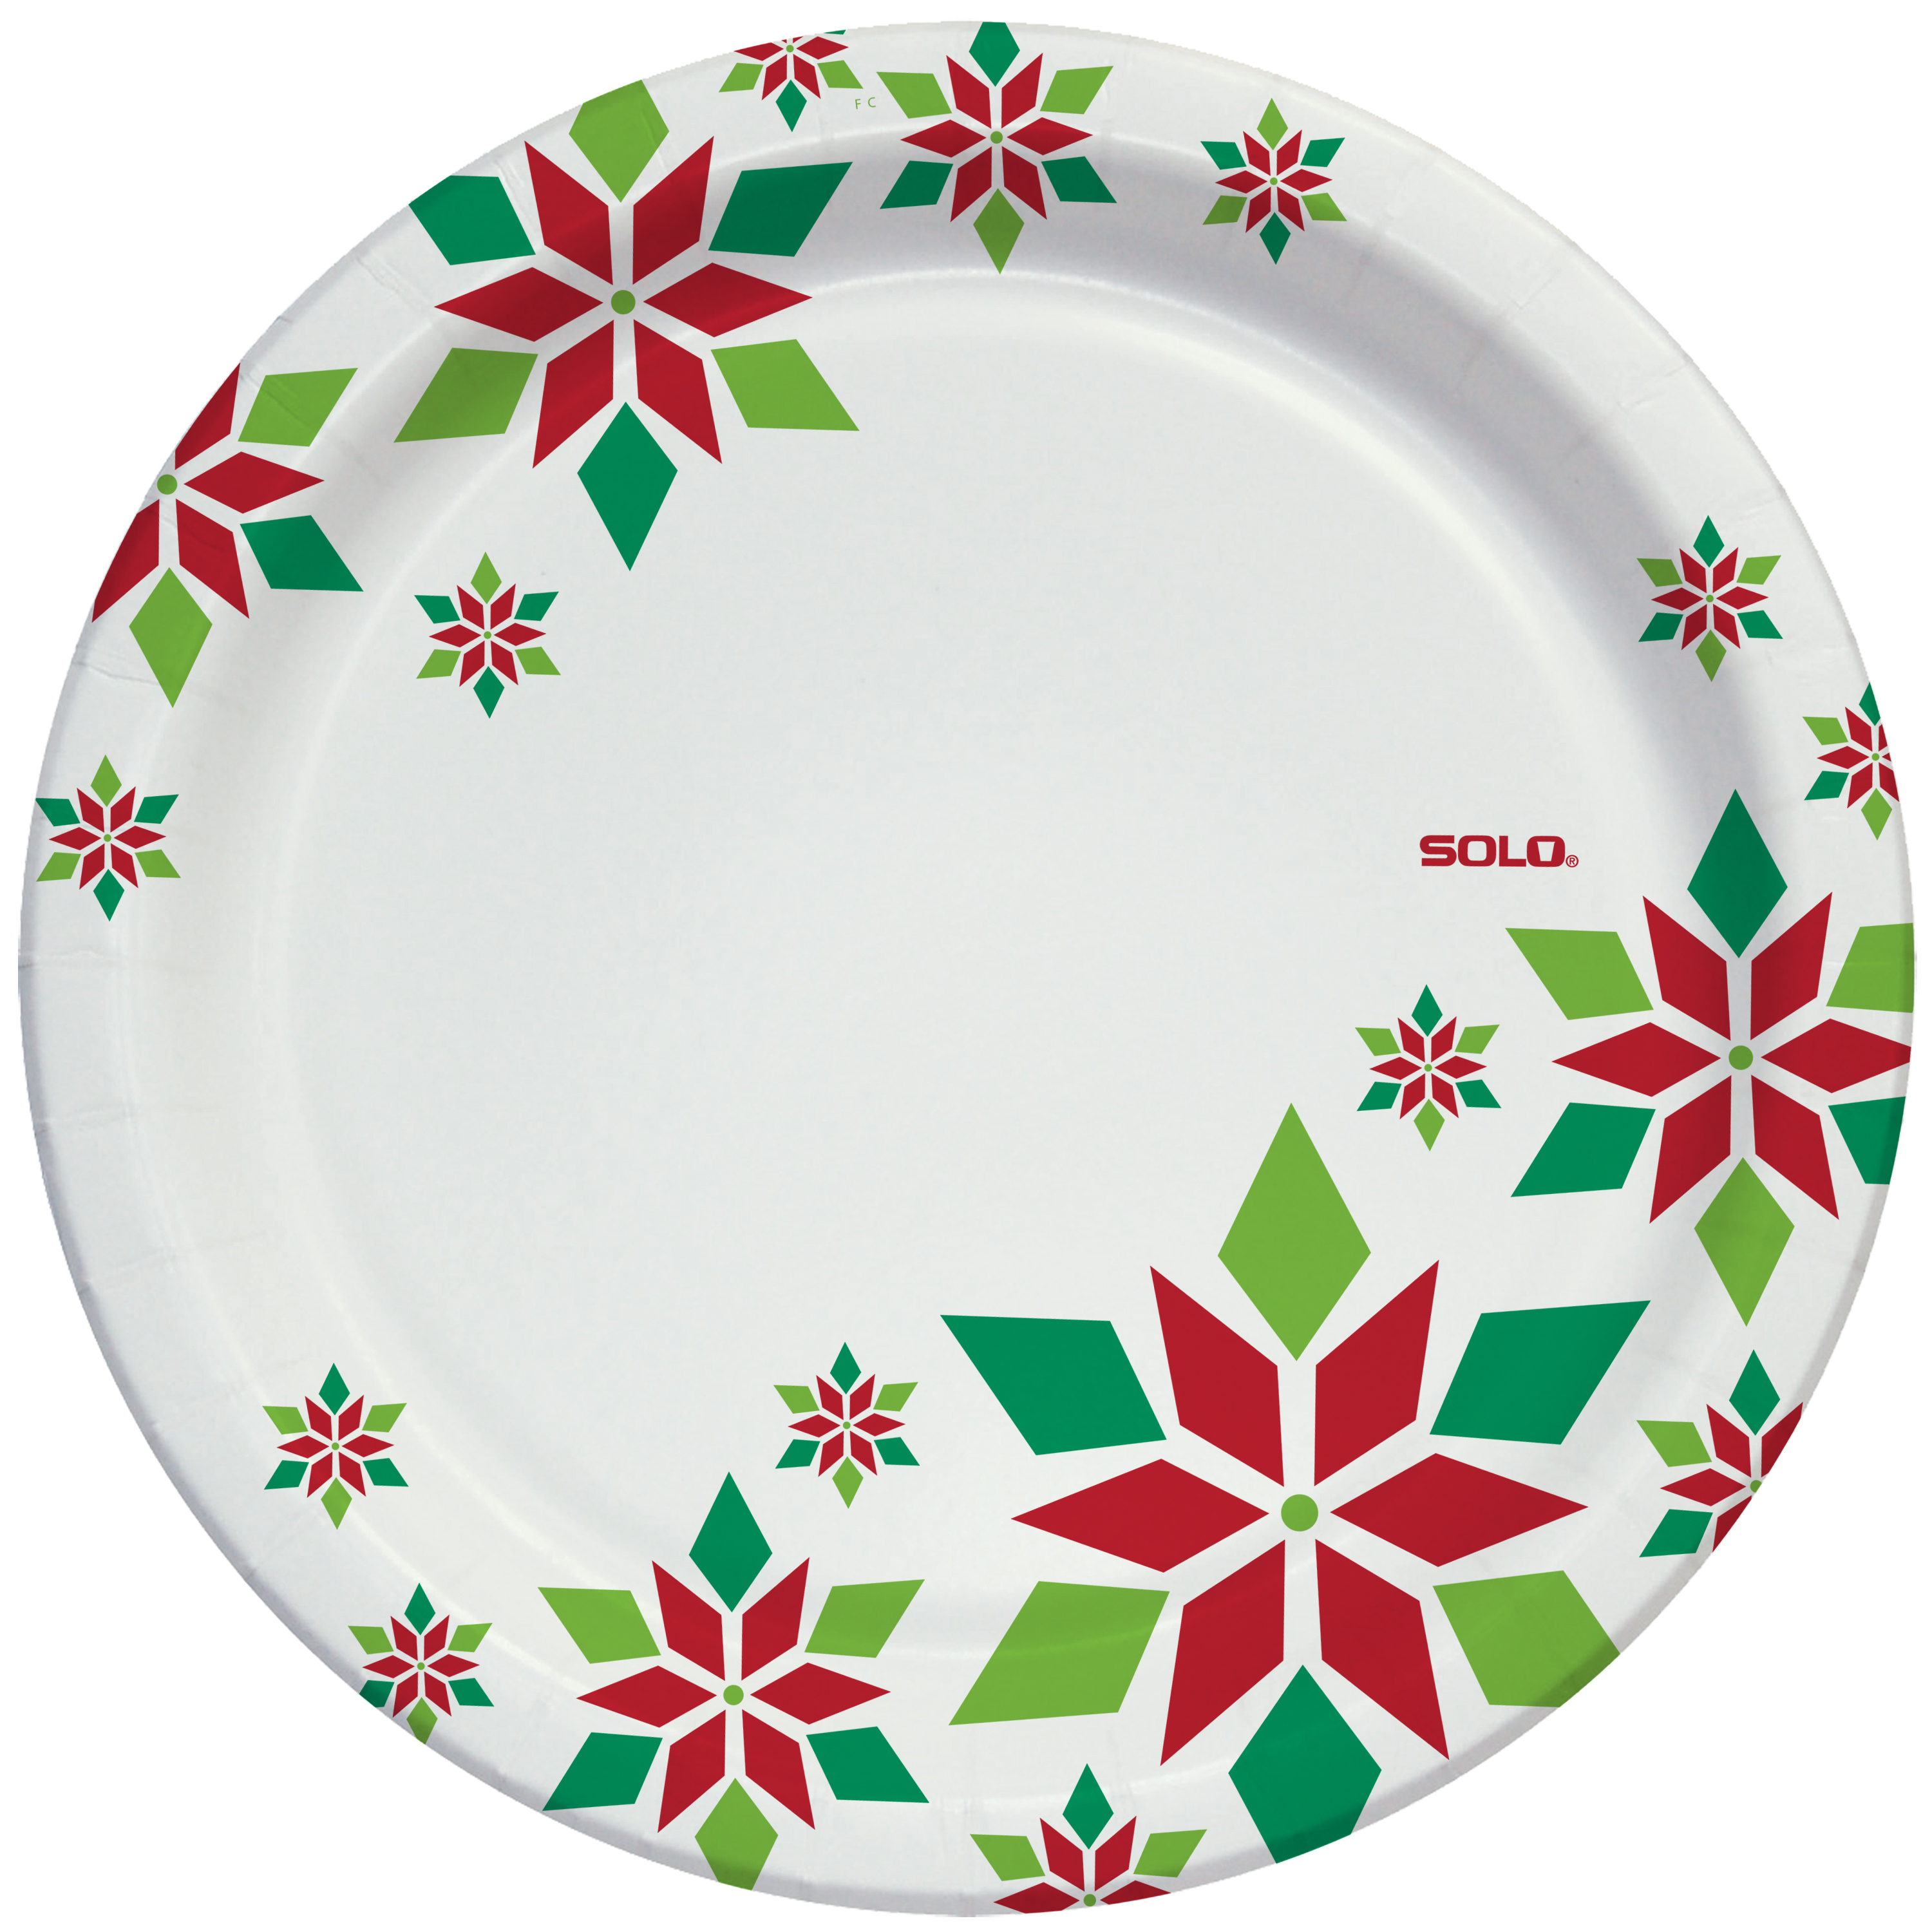 Solo Heavy Duty Holiday Paper Plates 10  22 Count Image 3 ...  sc 1 st  Walmart & Solo Heavy Duty Holiday Paper Plates 10